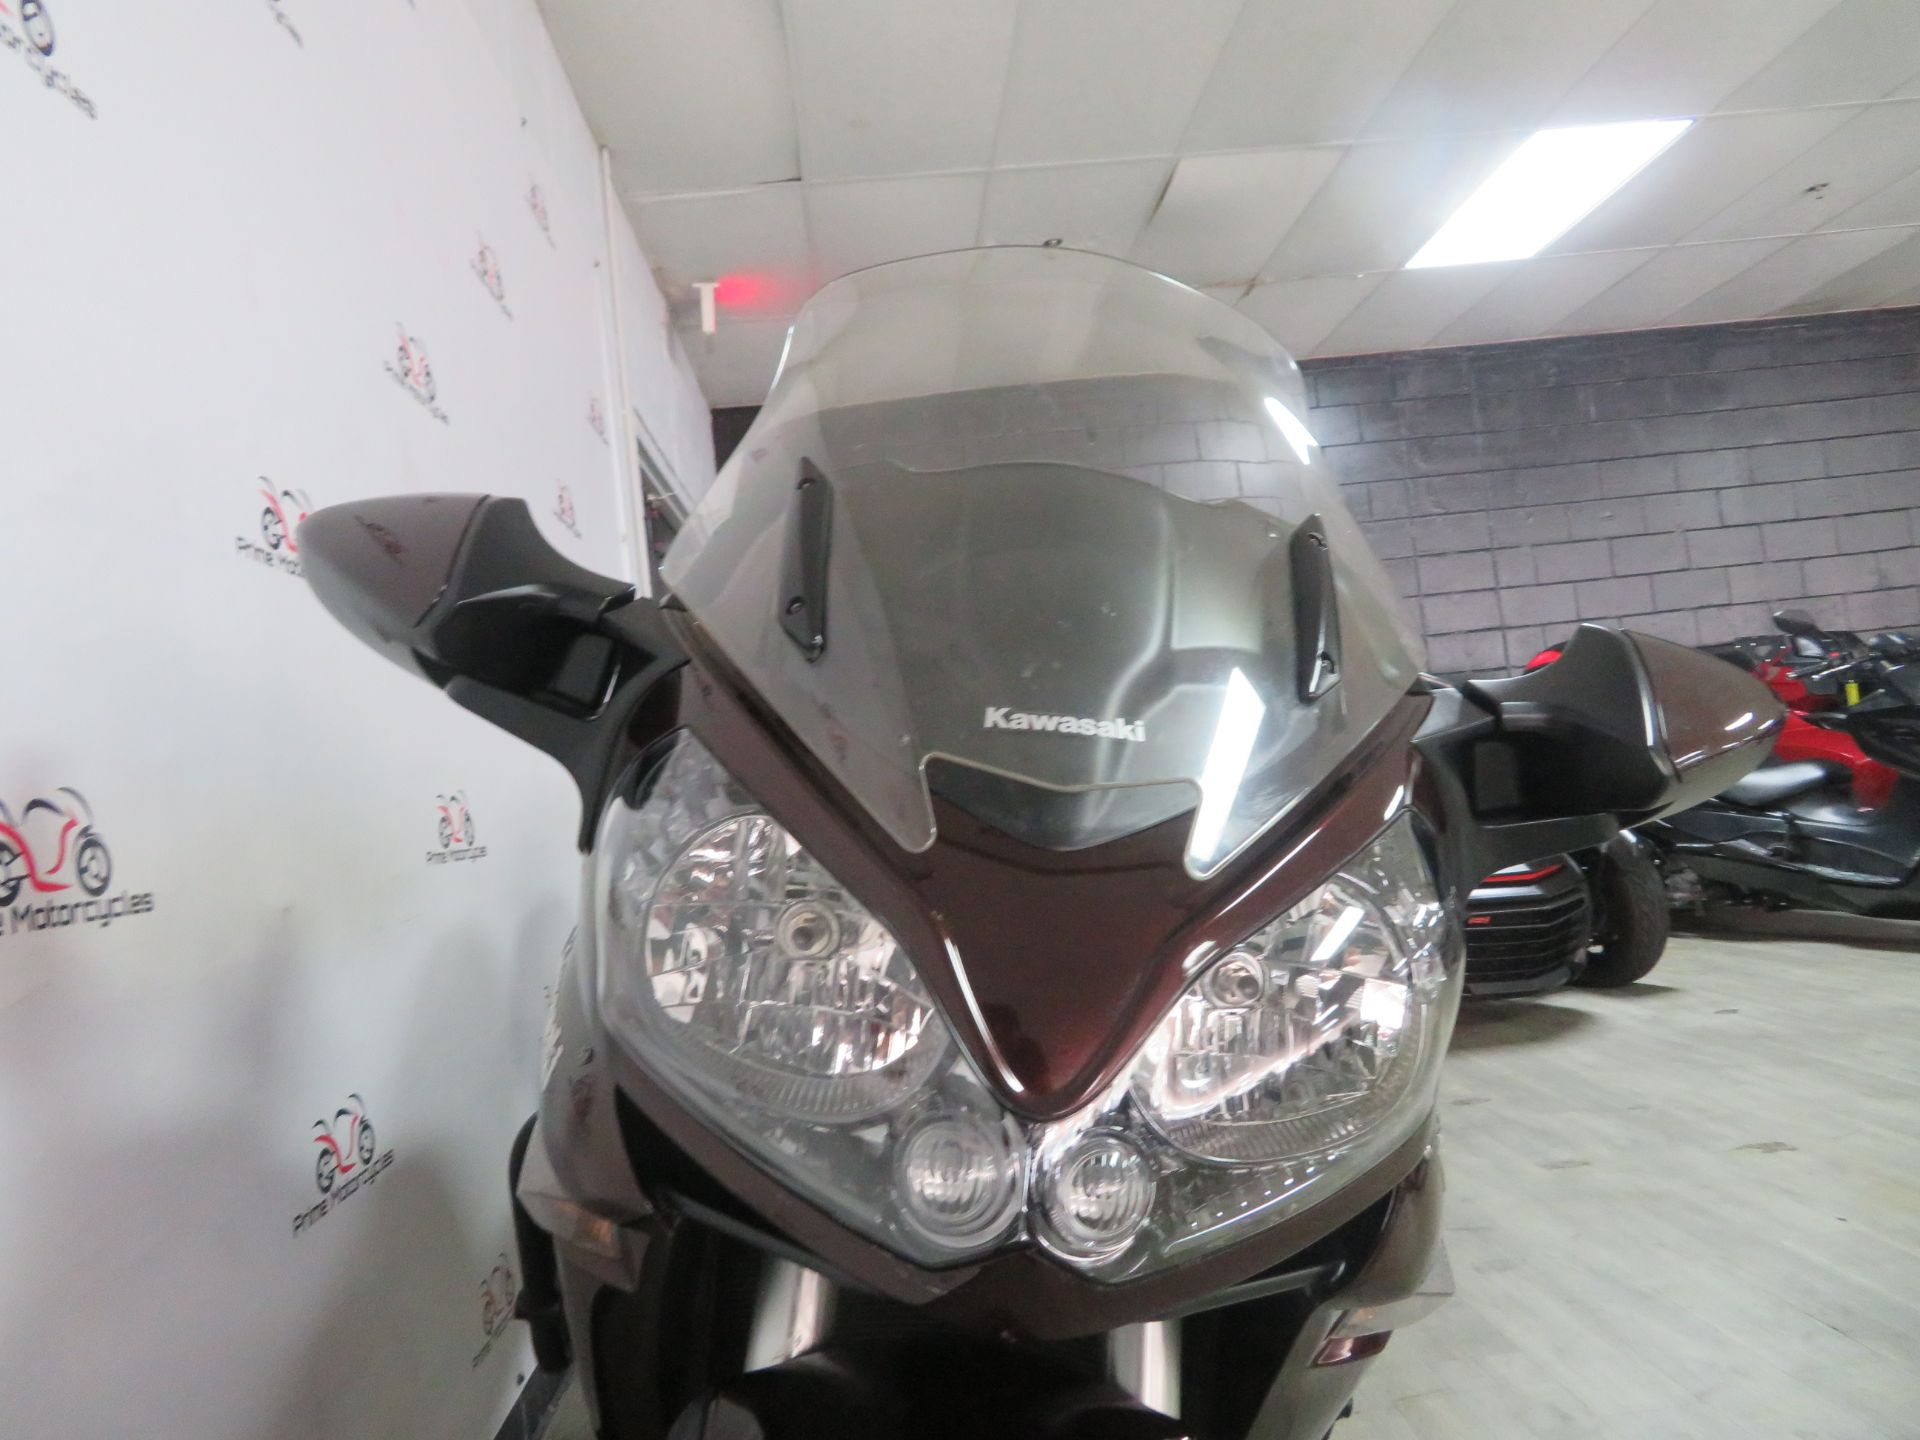 2012 Kawasaki Concours™ 14 ABS in Sanford, Florida - Photo 16